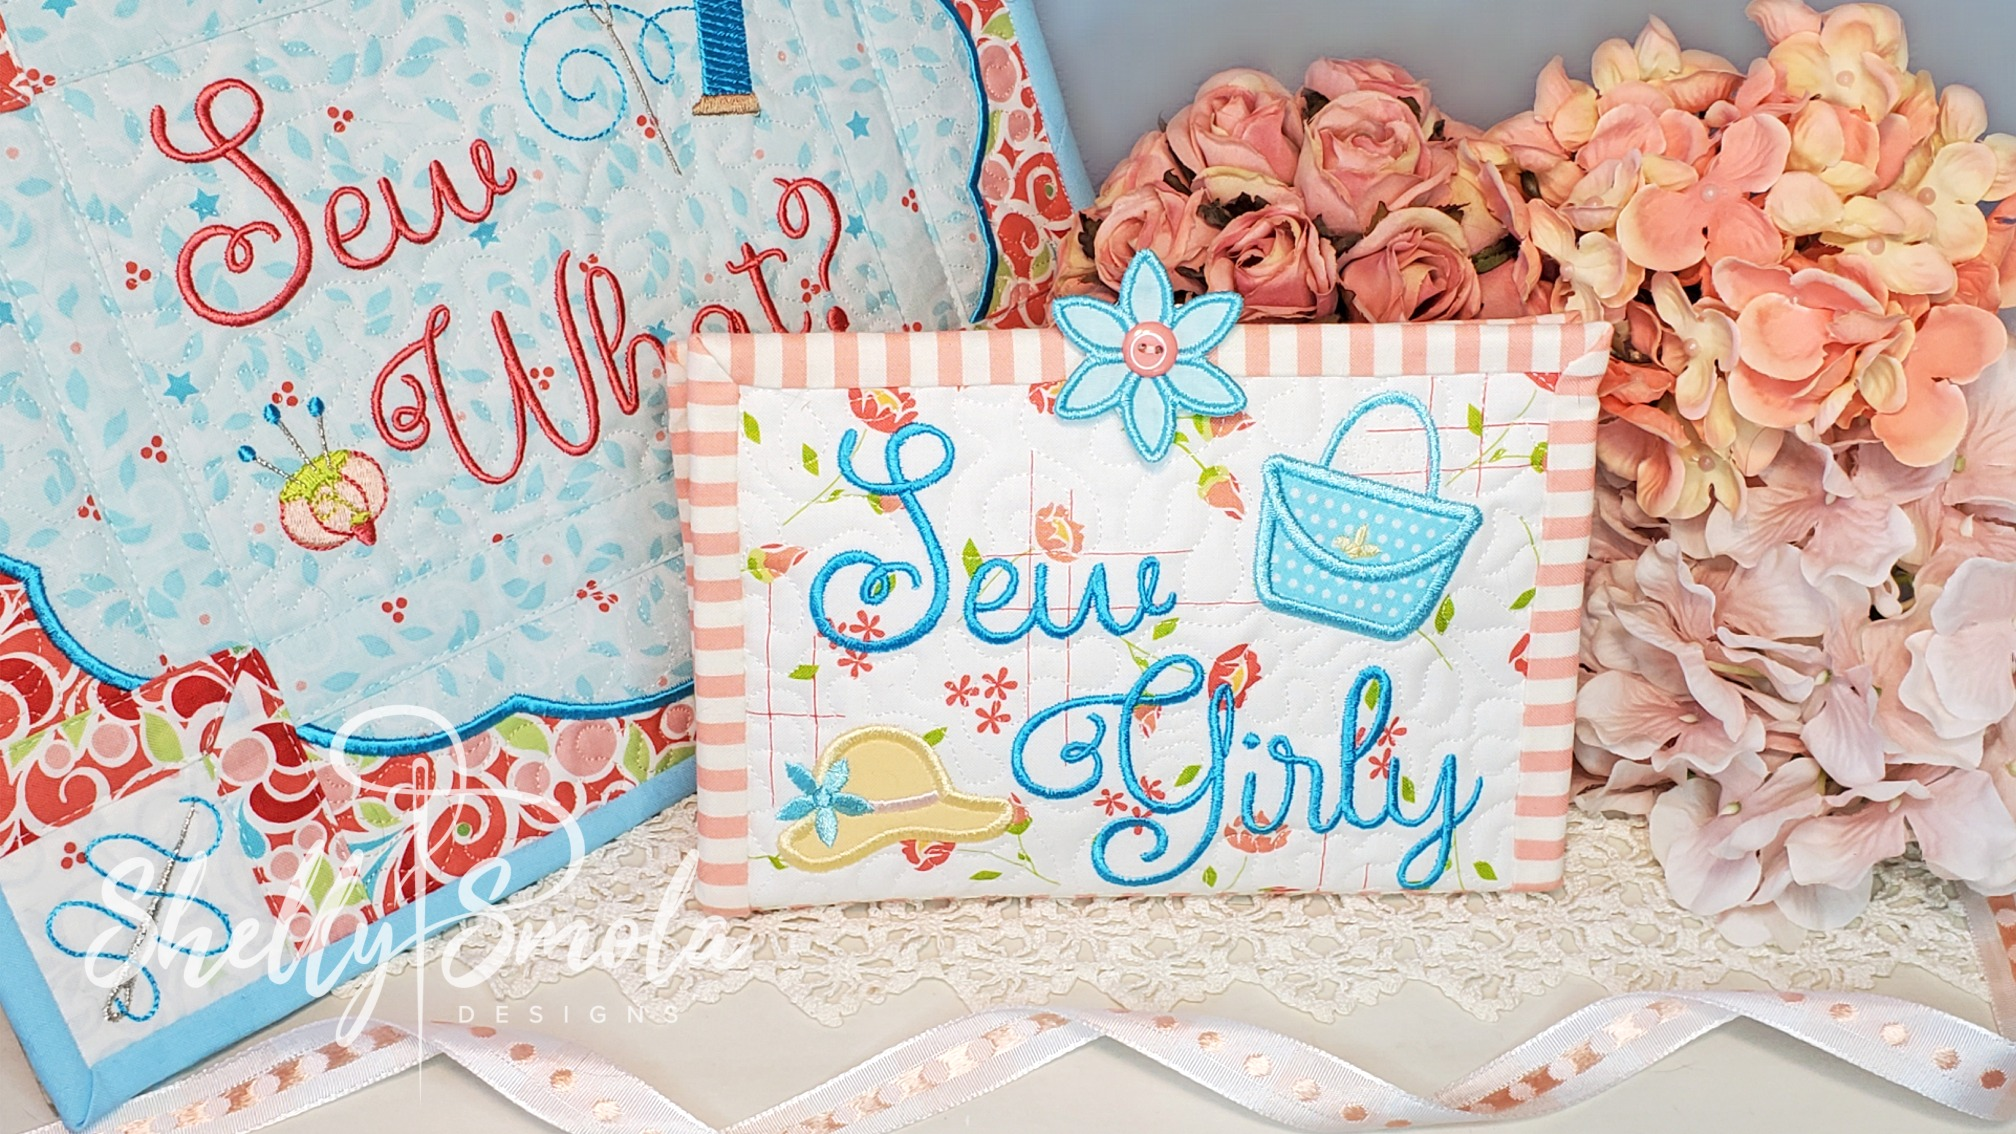 Sew Crazy - Sew Girly Projects by Shelly Smola